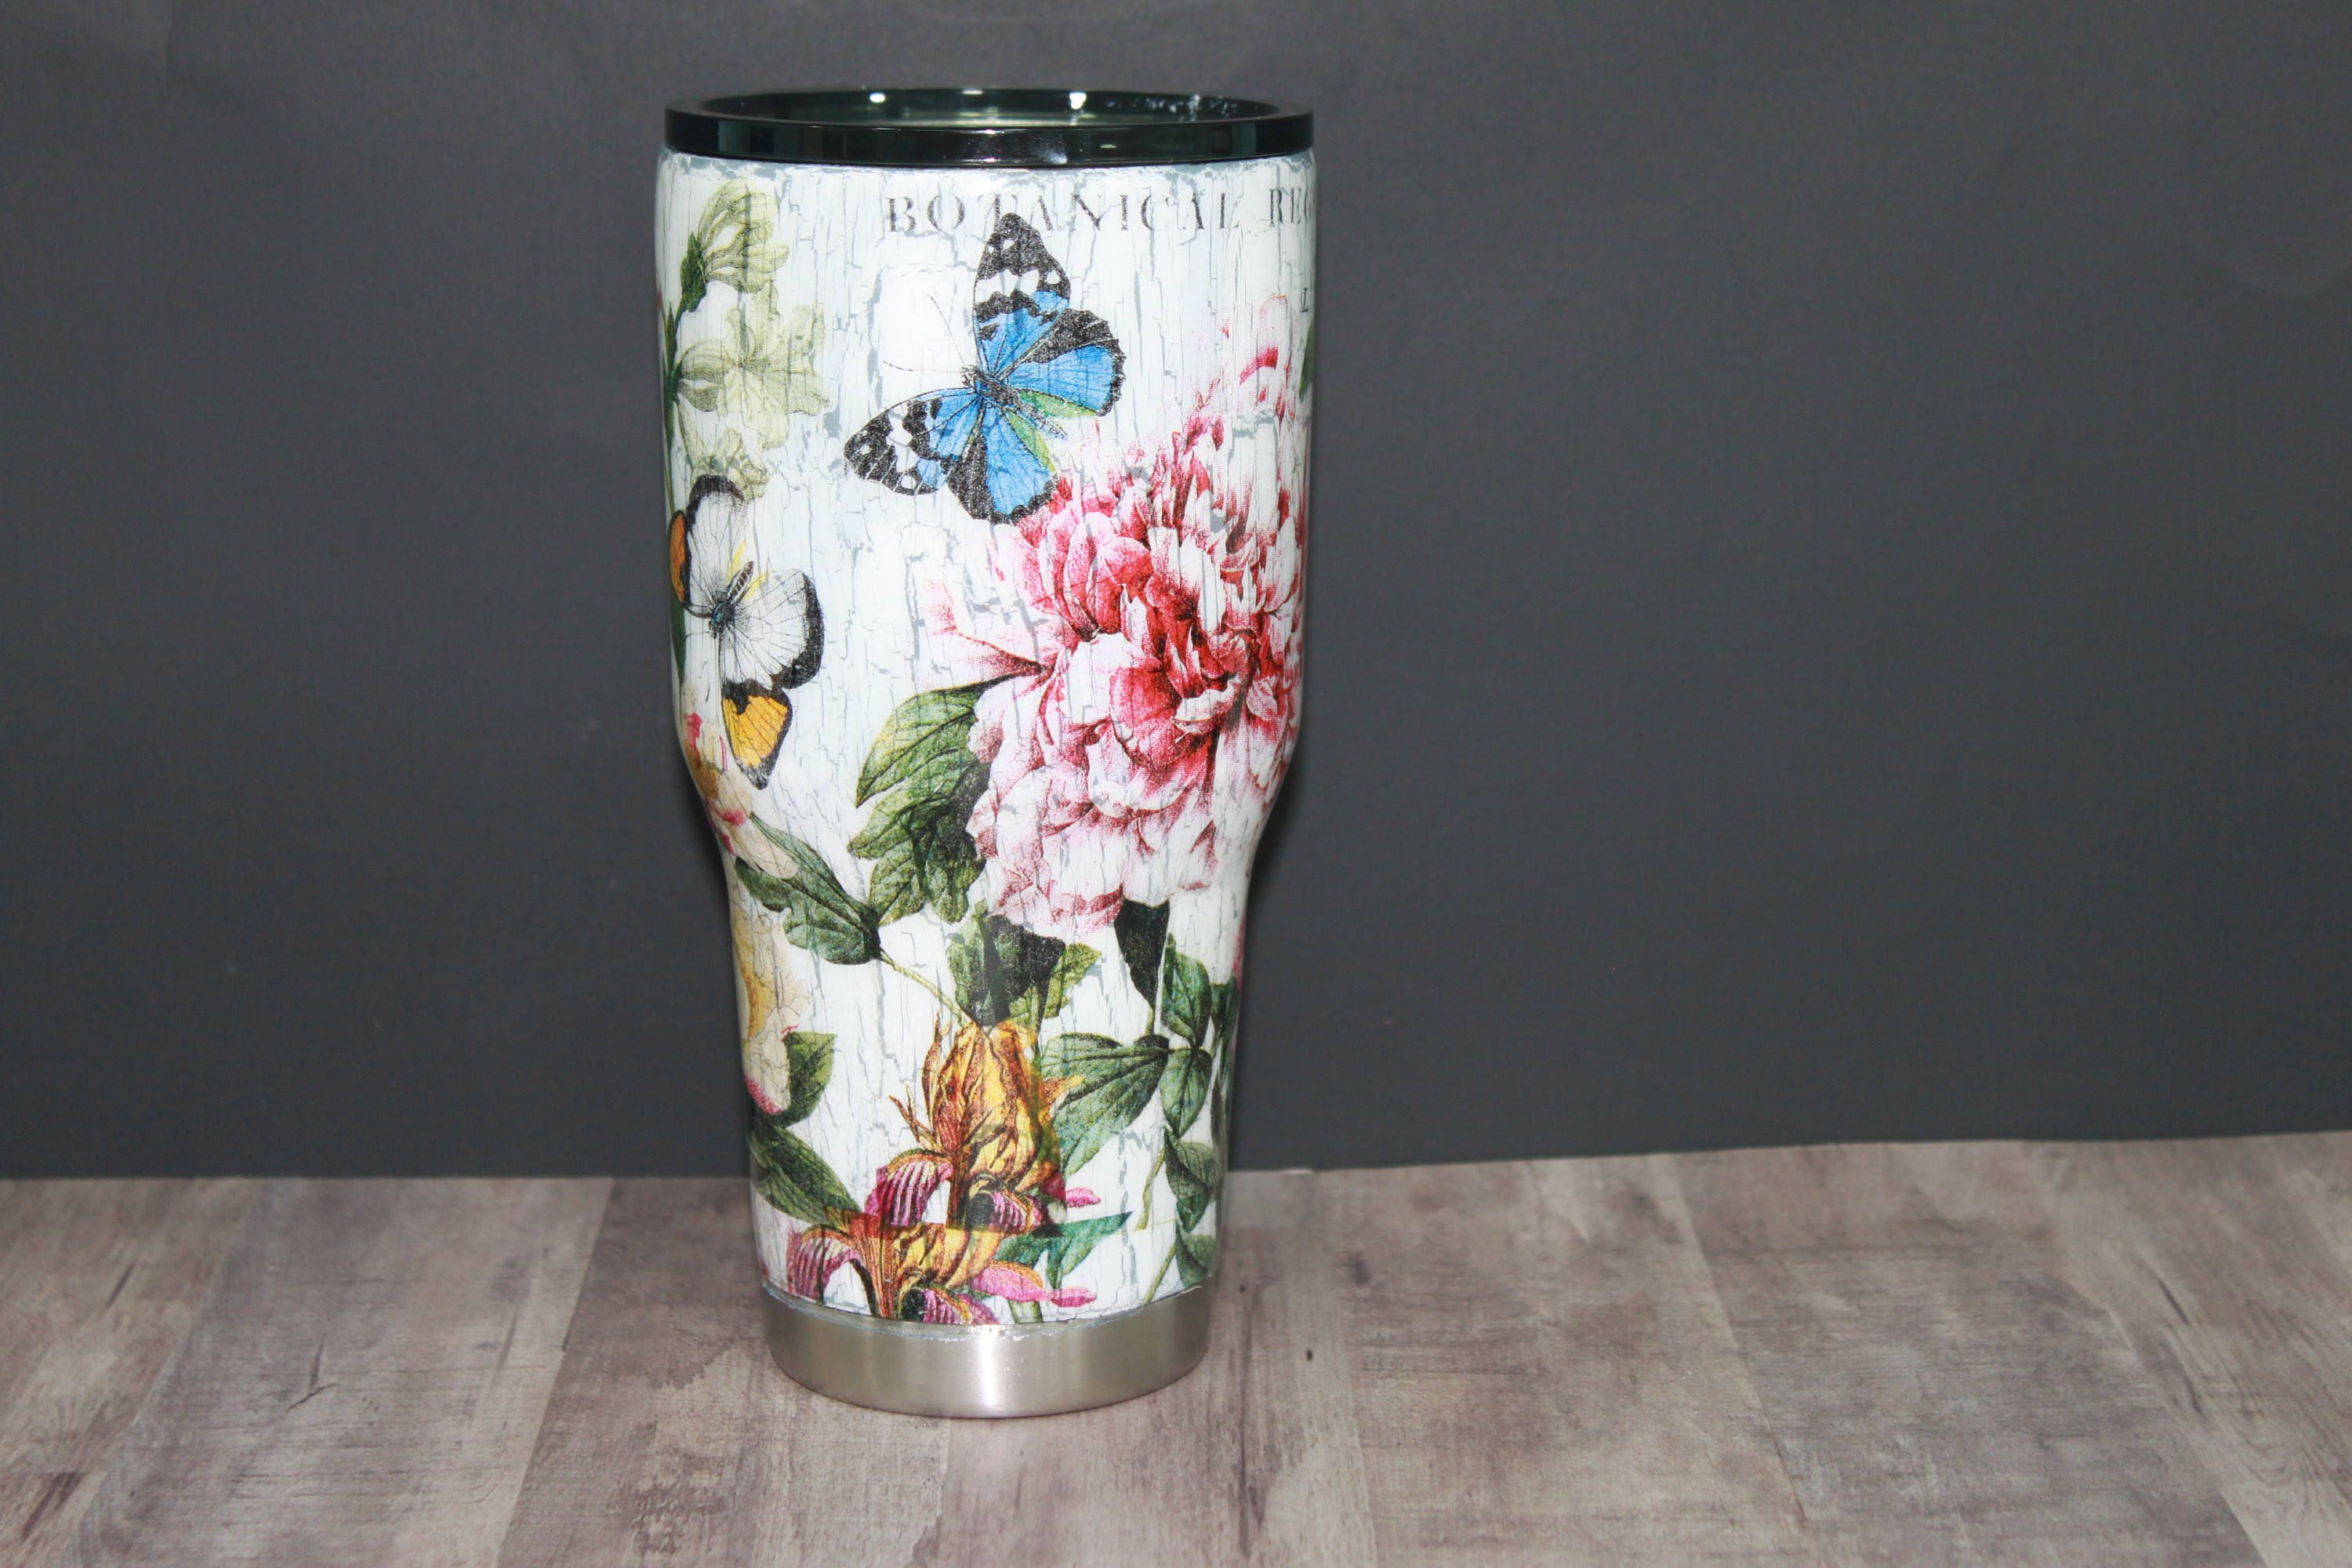 Decoupage Crackel Paint Tumbler / Stainless steel tumbler